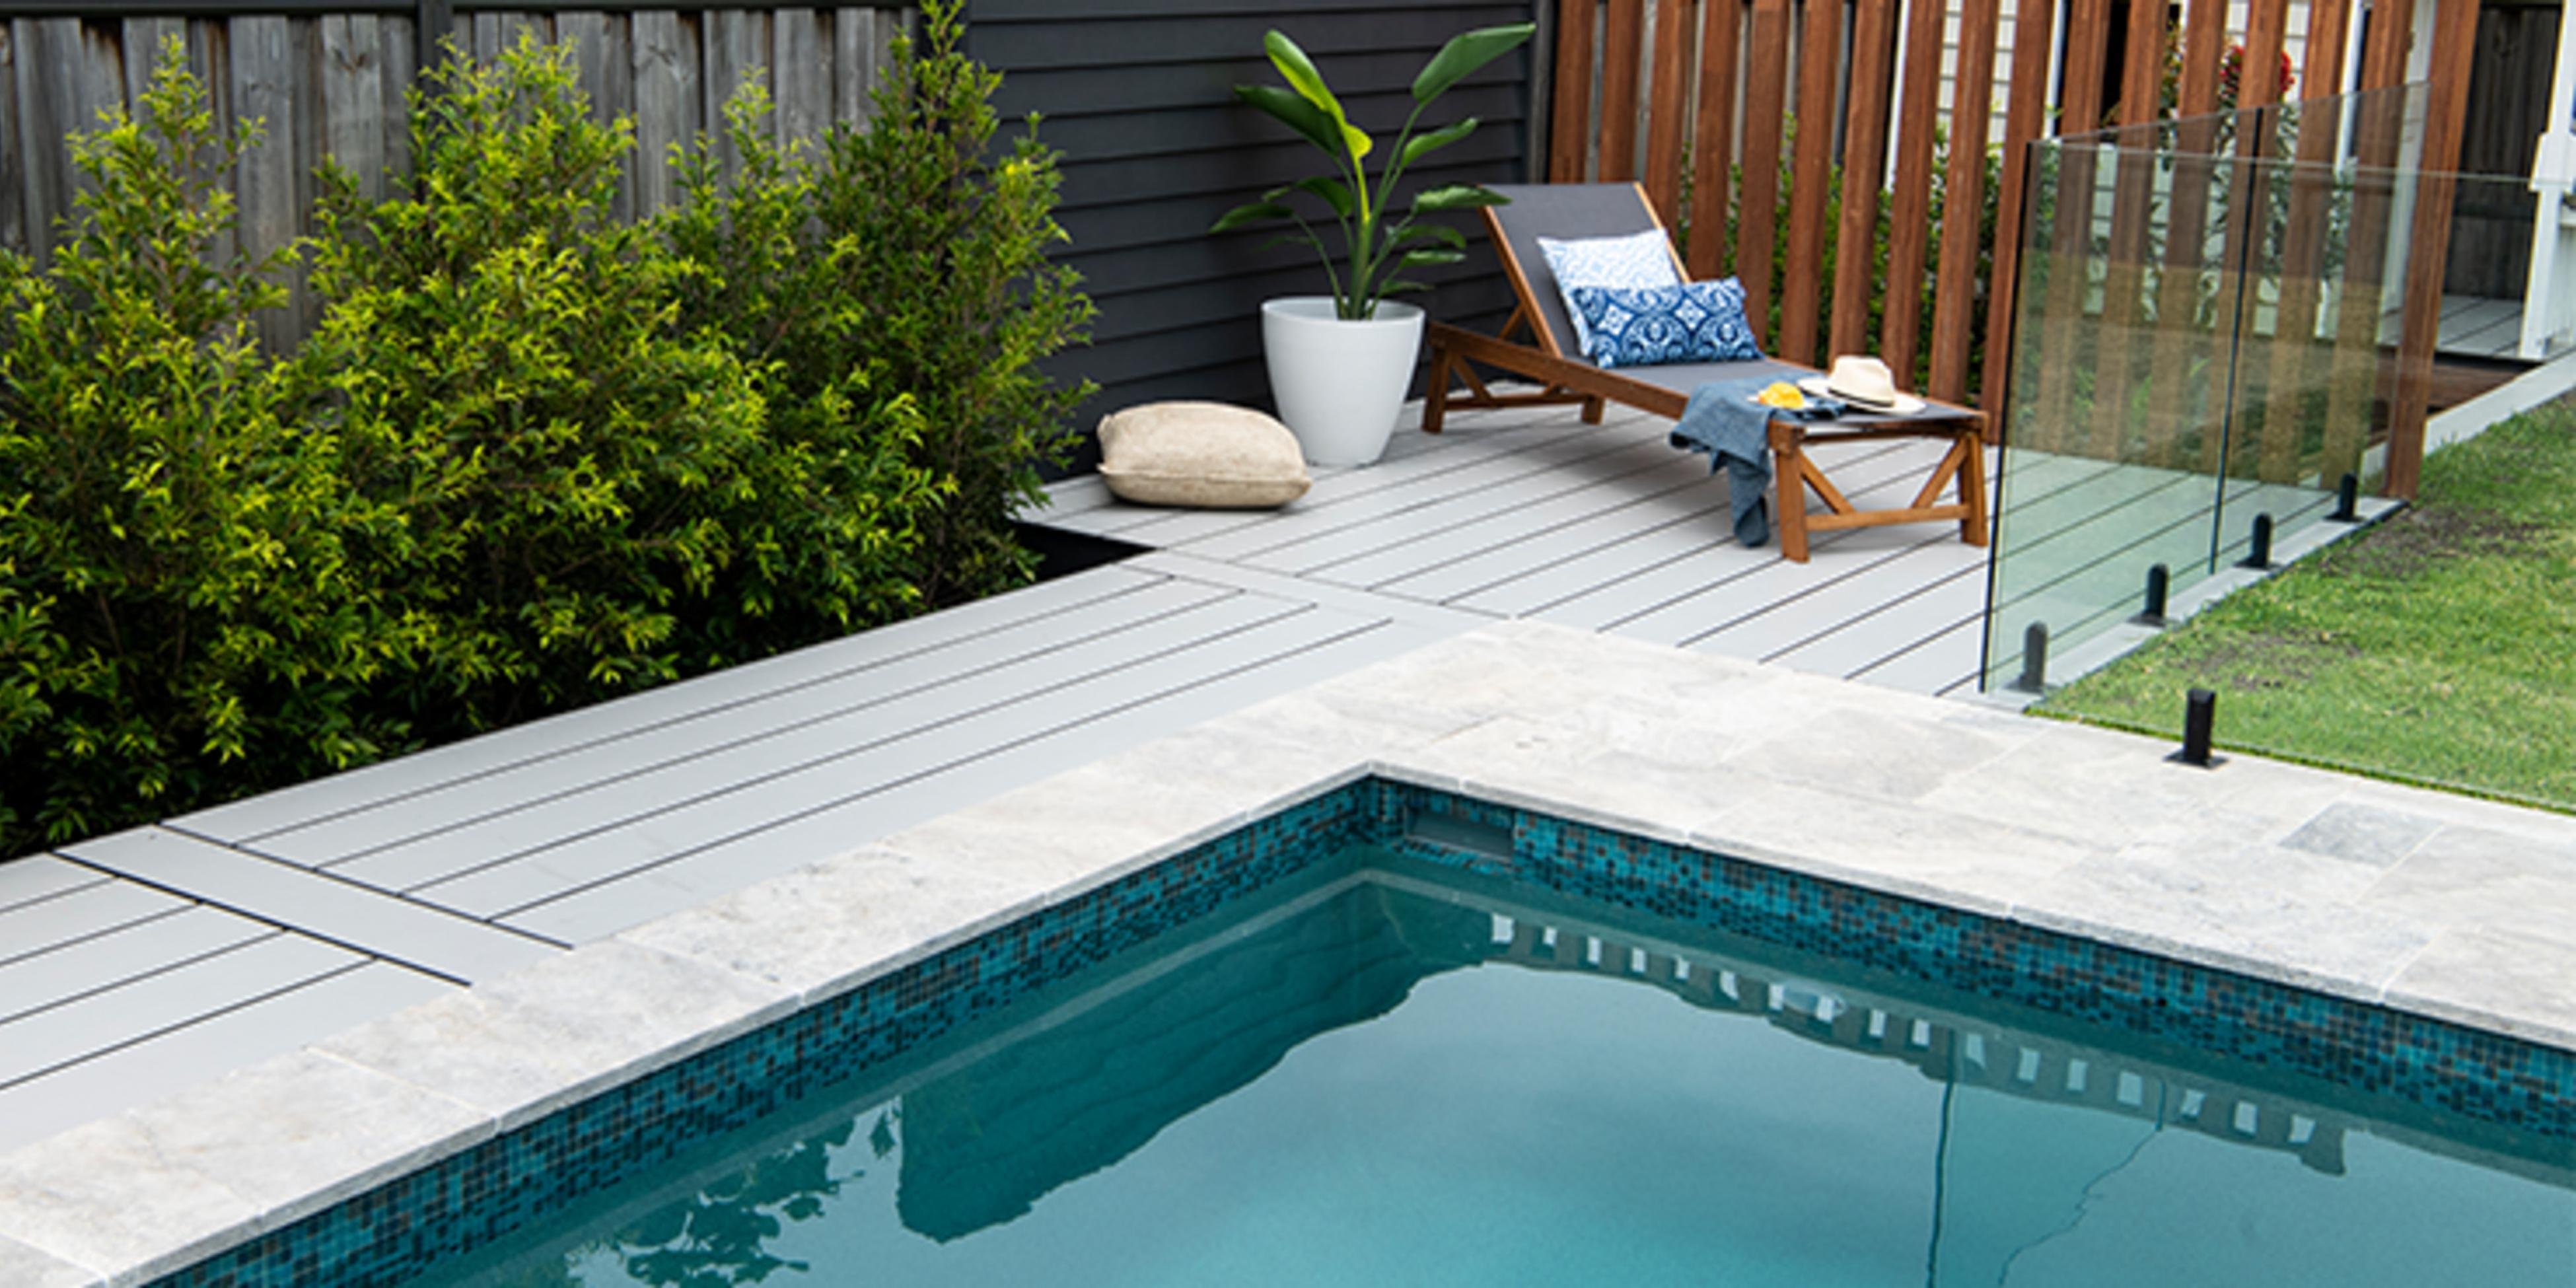 Pool surrounded by timber decking with a lounge chair